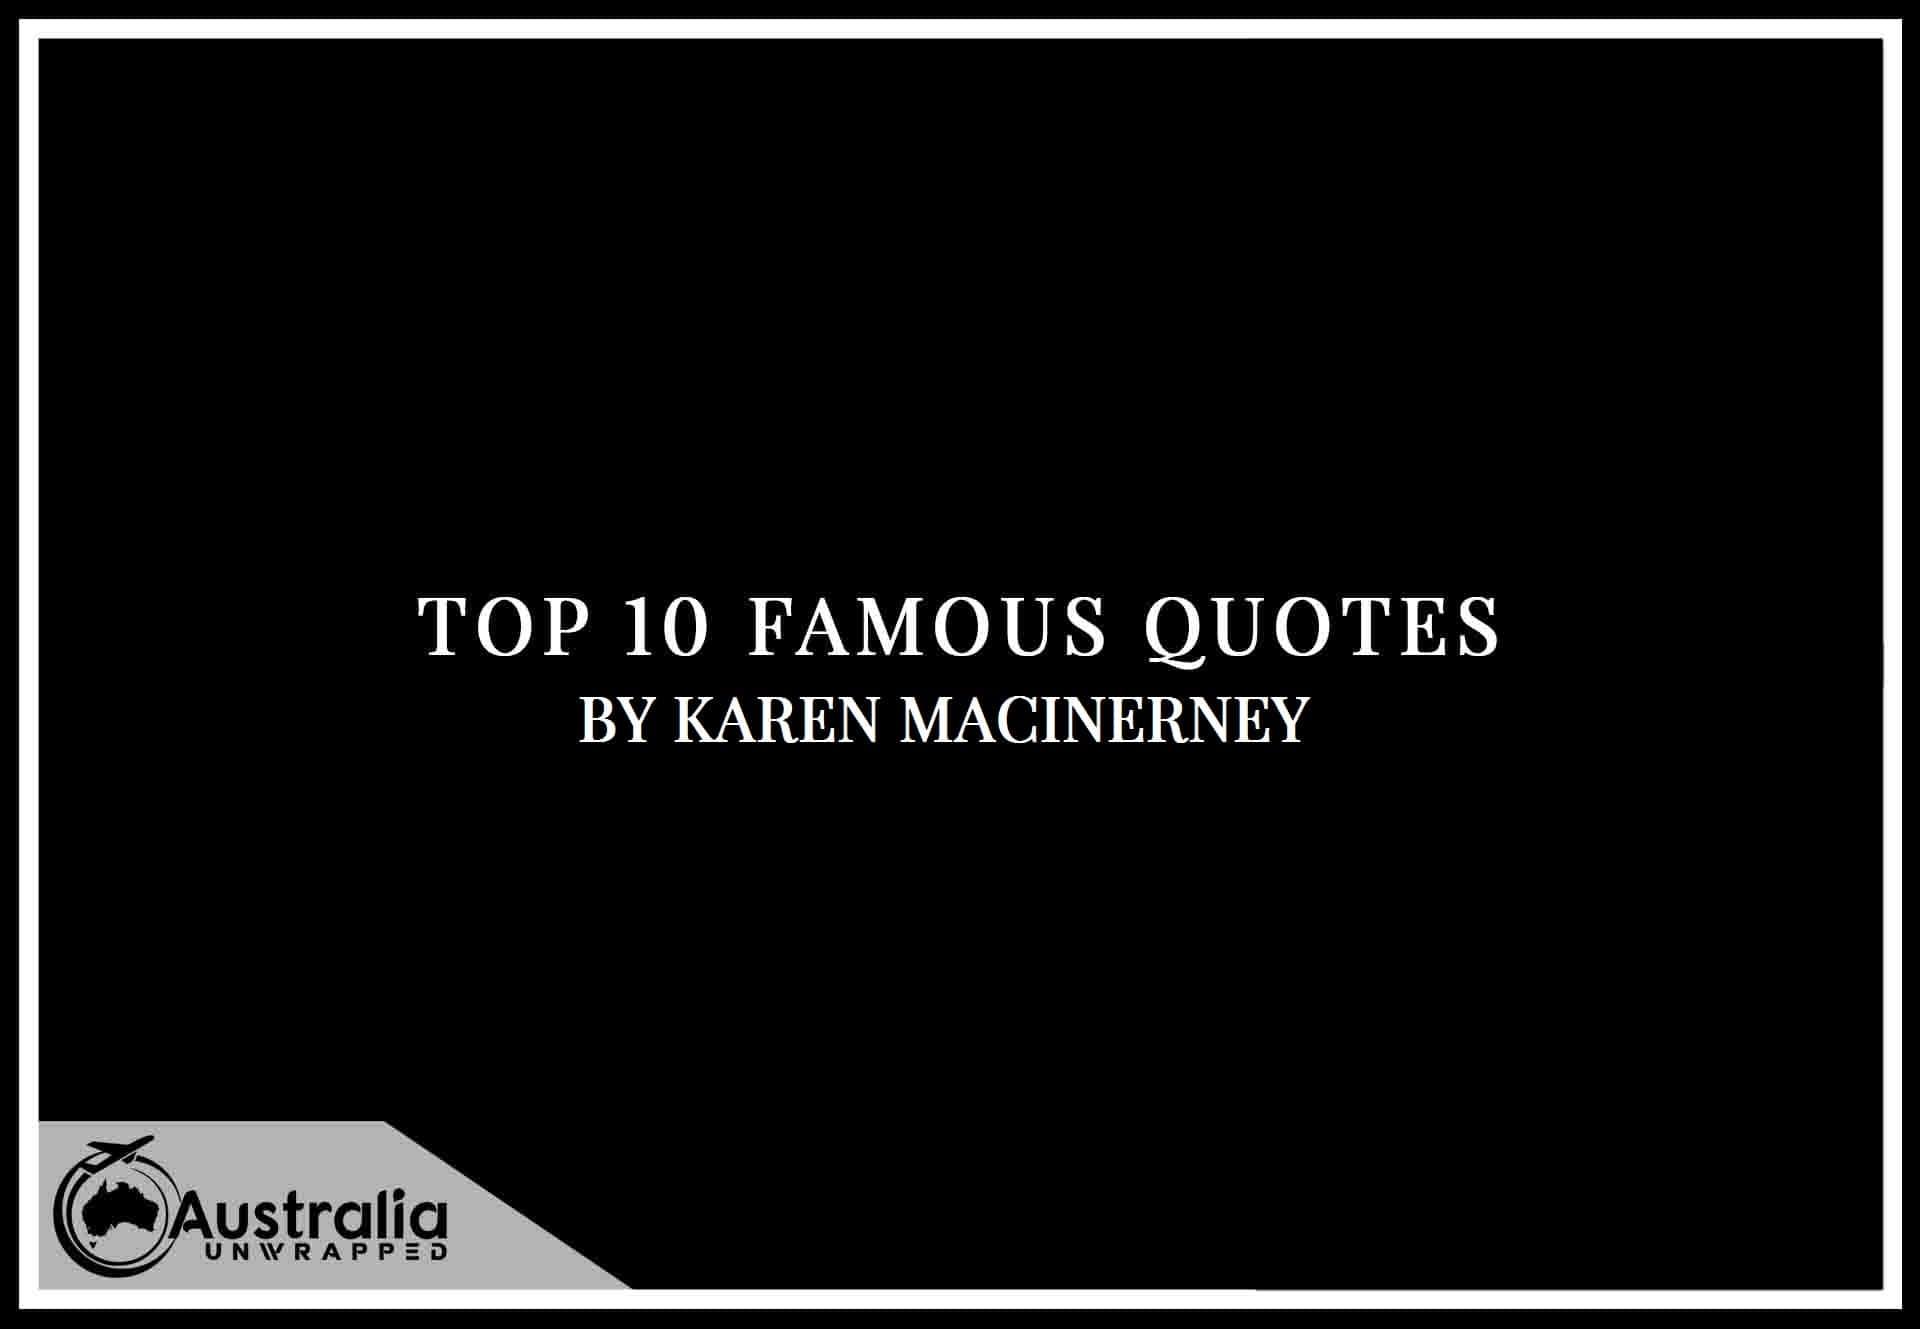 Karen MacInerney's Top 10 Popular and Famous Quotes